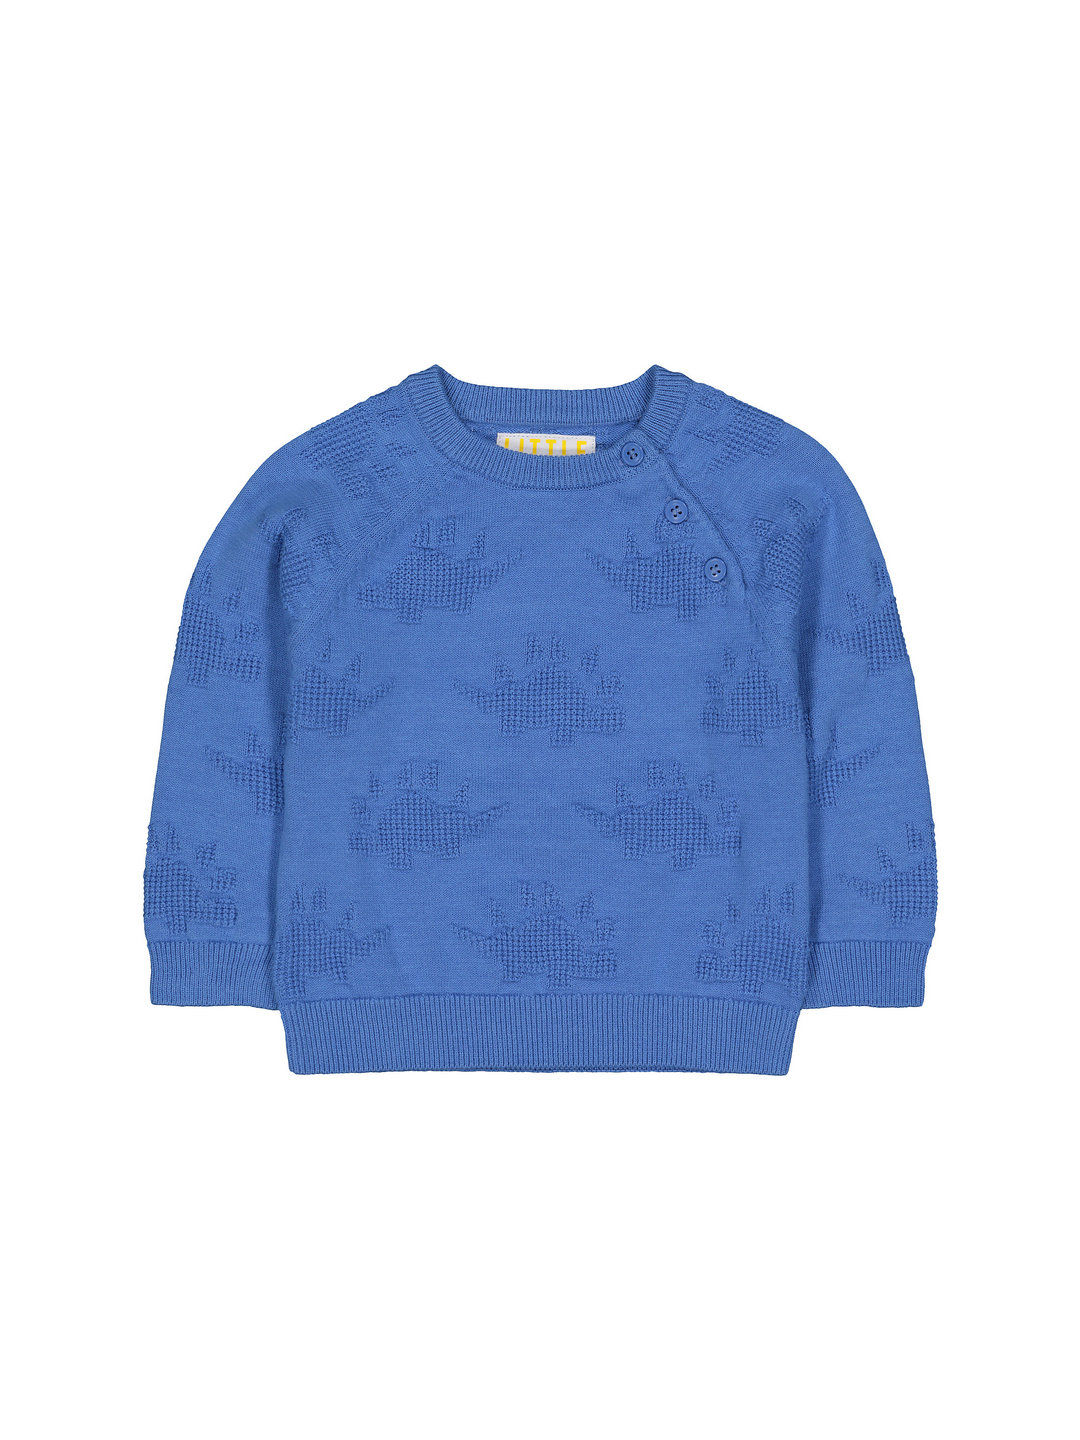 Mothercare | Blue Knitted Dino Jumper